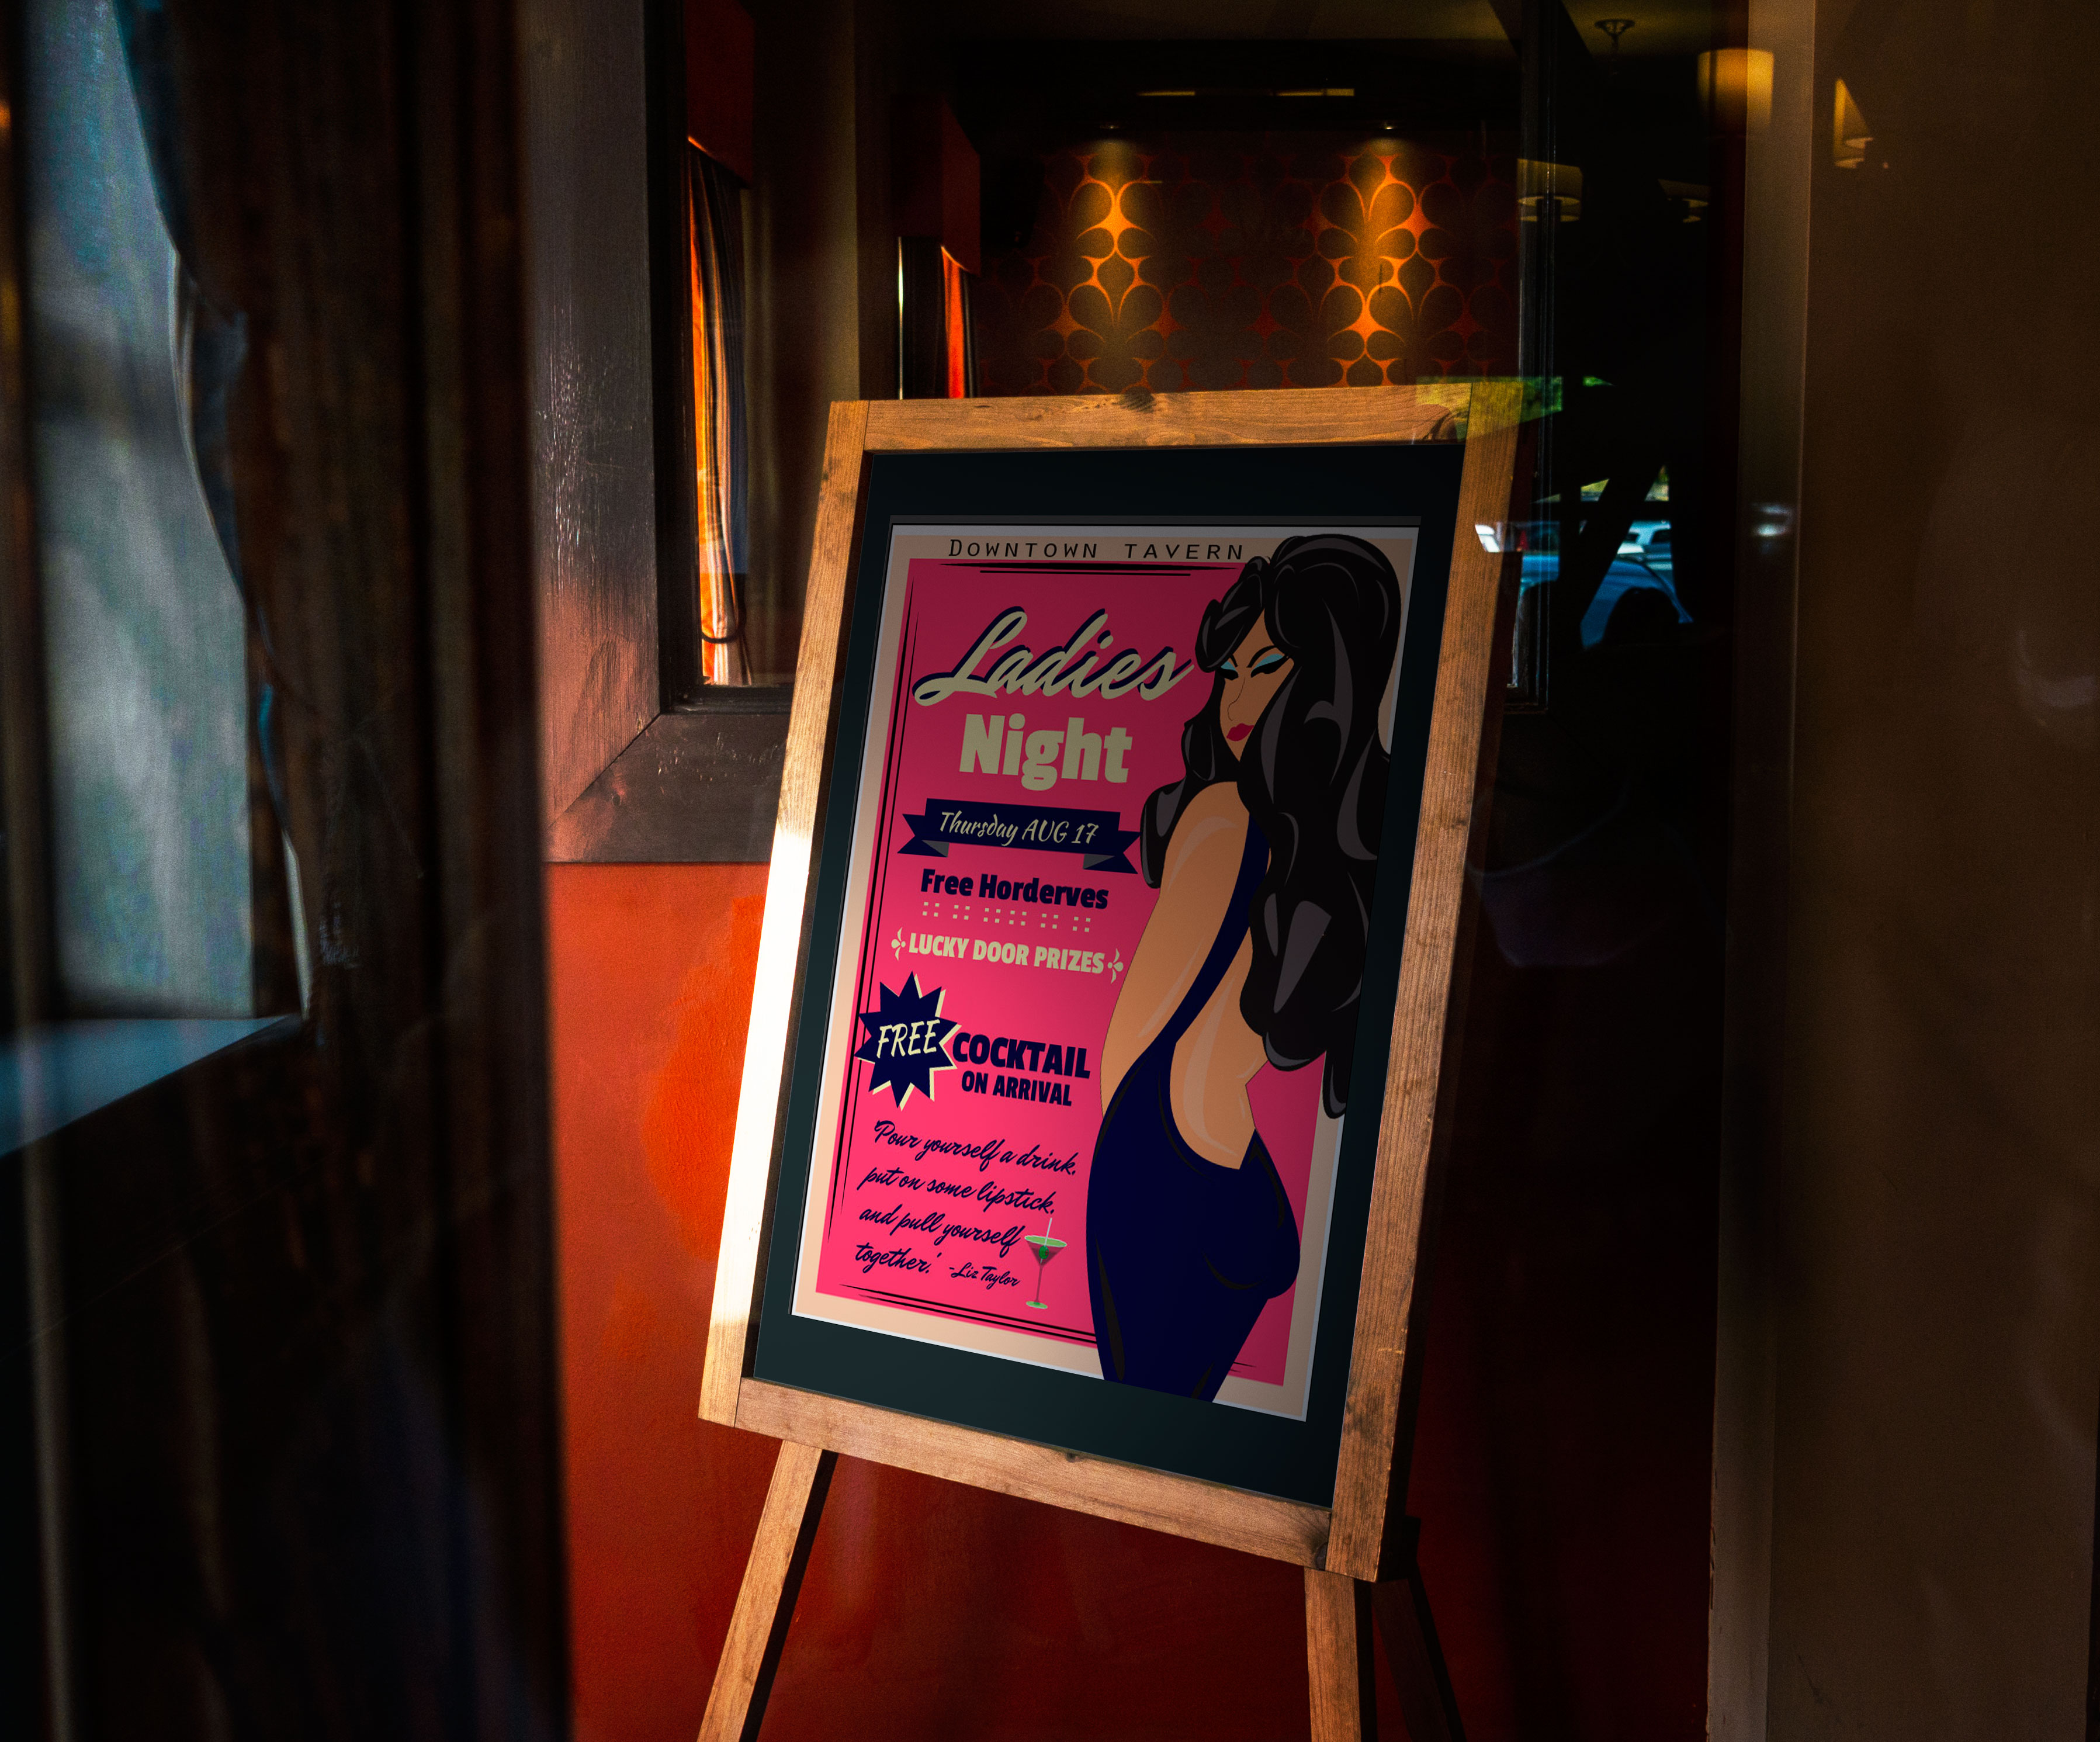 A Poster featuring Ladies Night for a local pub